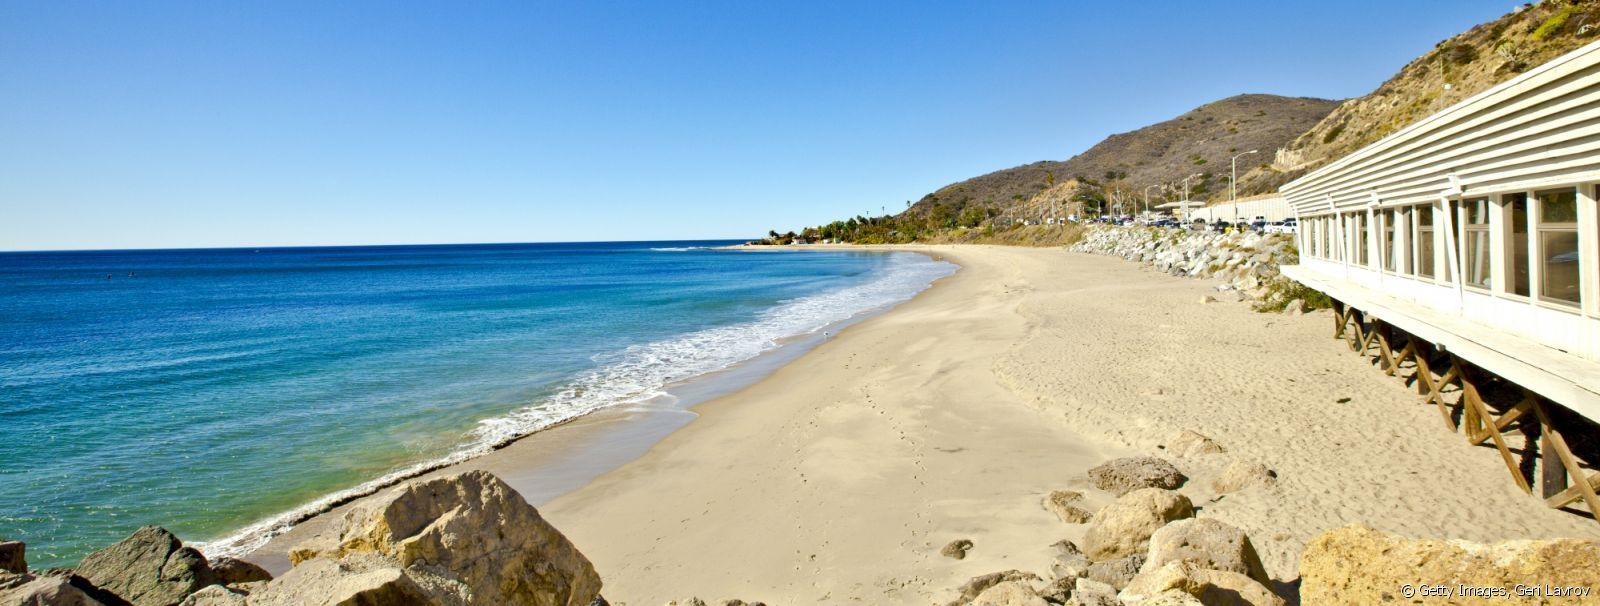 Malibu, Californie